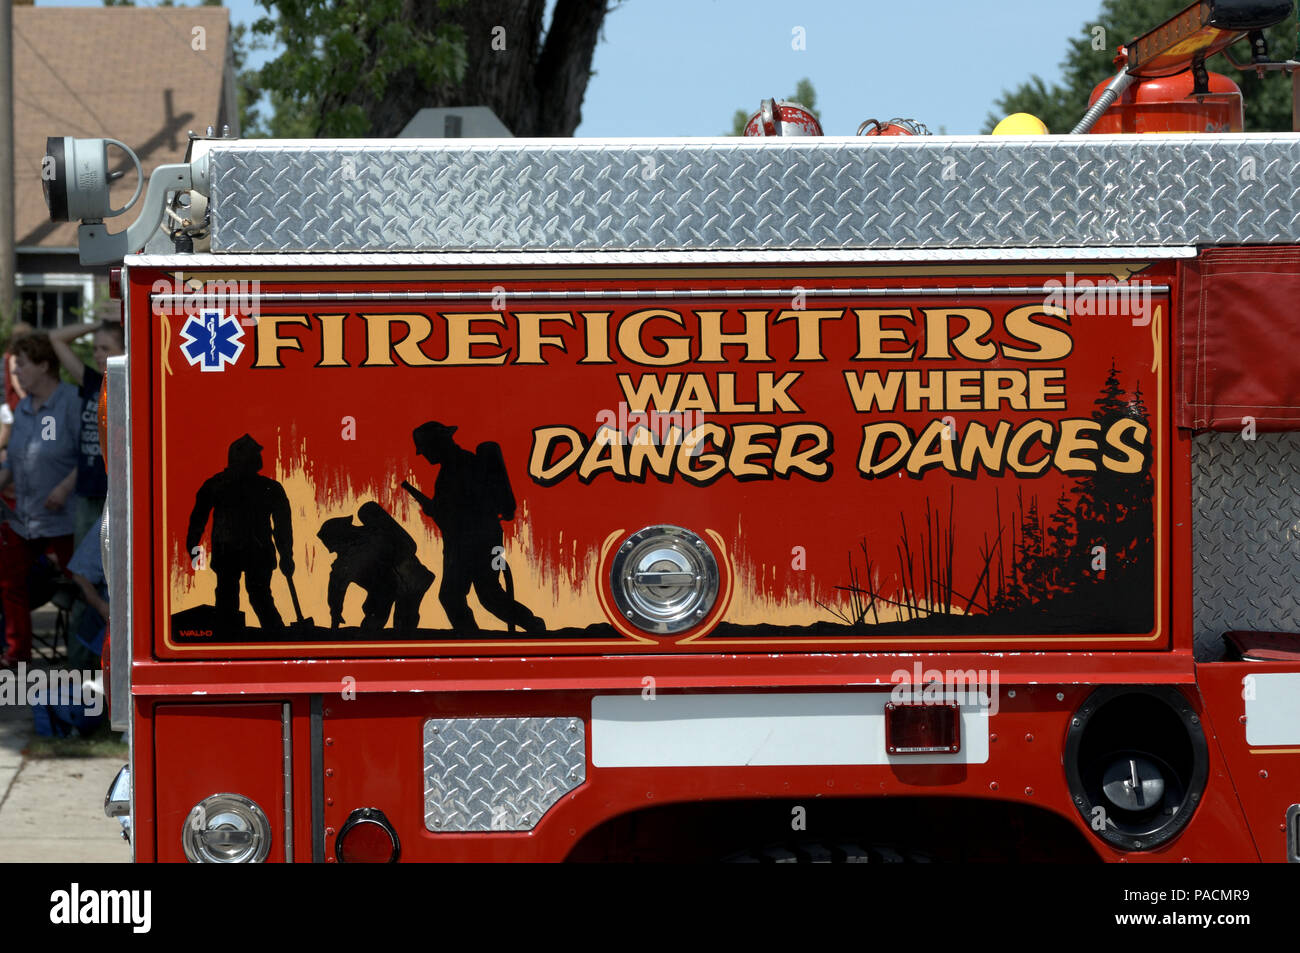 Hummer fire truck in parade - Stock Image